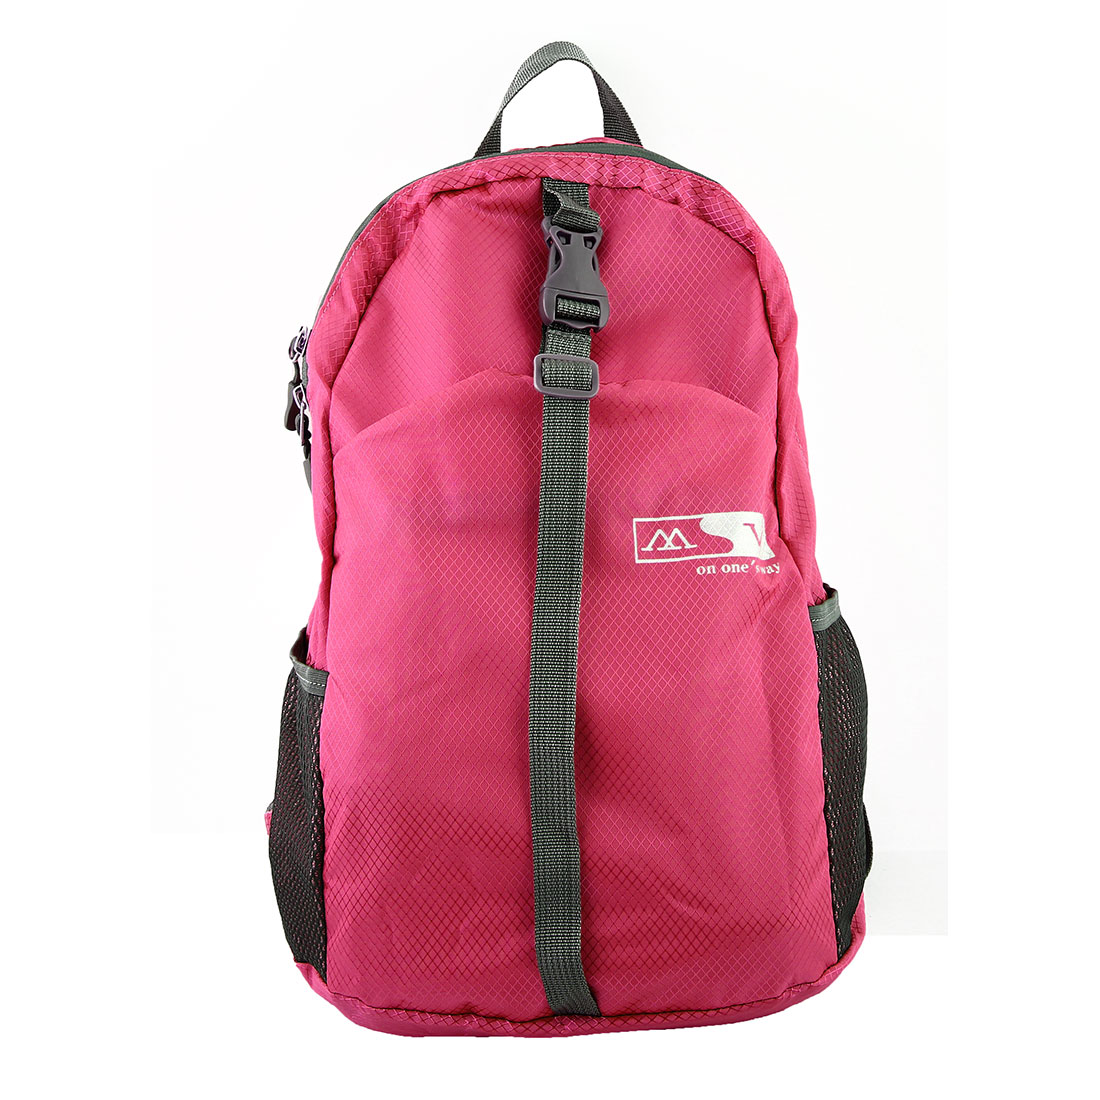 Lightweight Foldable Pack Hiking Camping Daypack Water Resistant Travel Backpack Sport Bag Fuchsia 20L